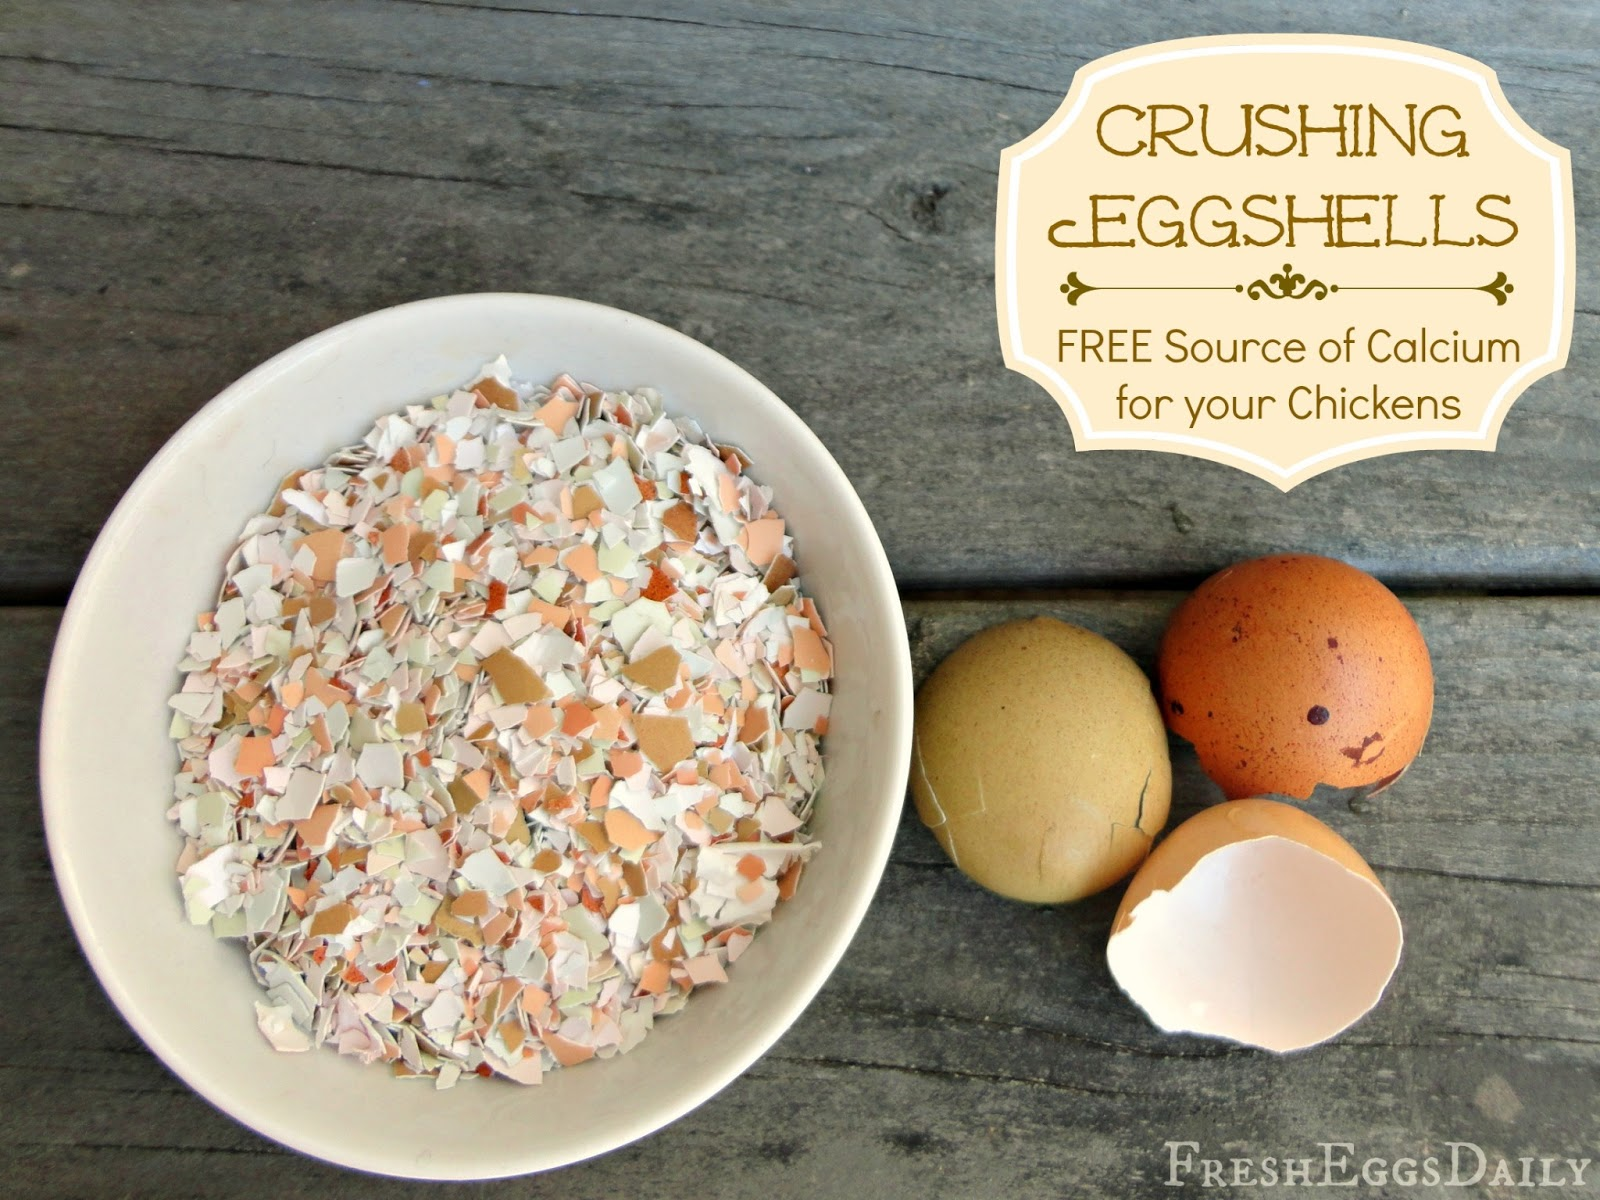 Crushed Eggshells As A Free Calcium Source For Your Chickens Fresh